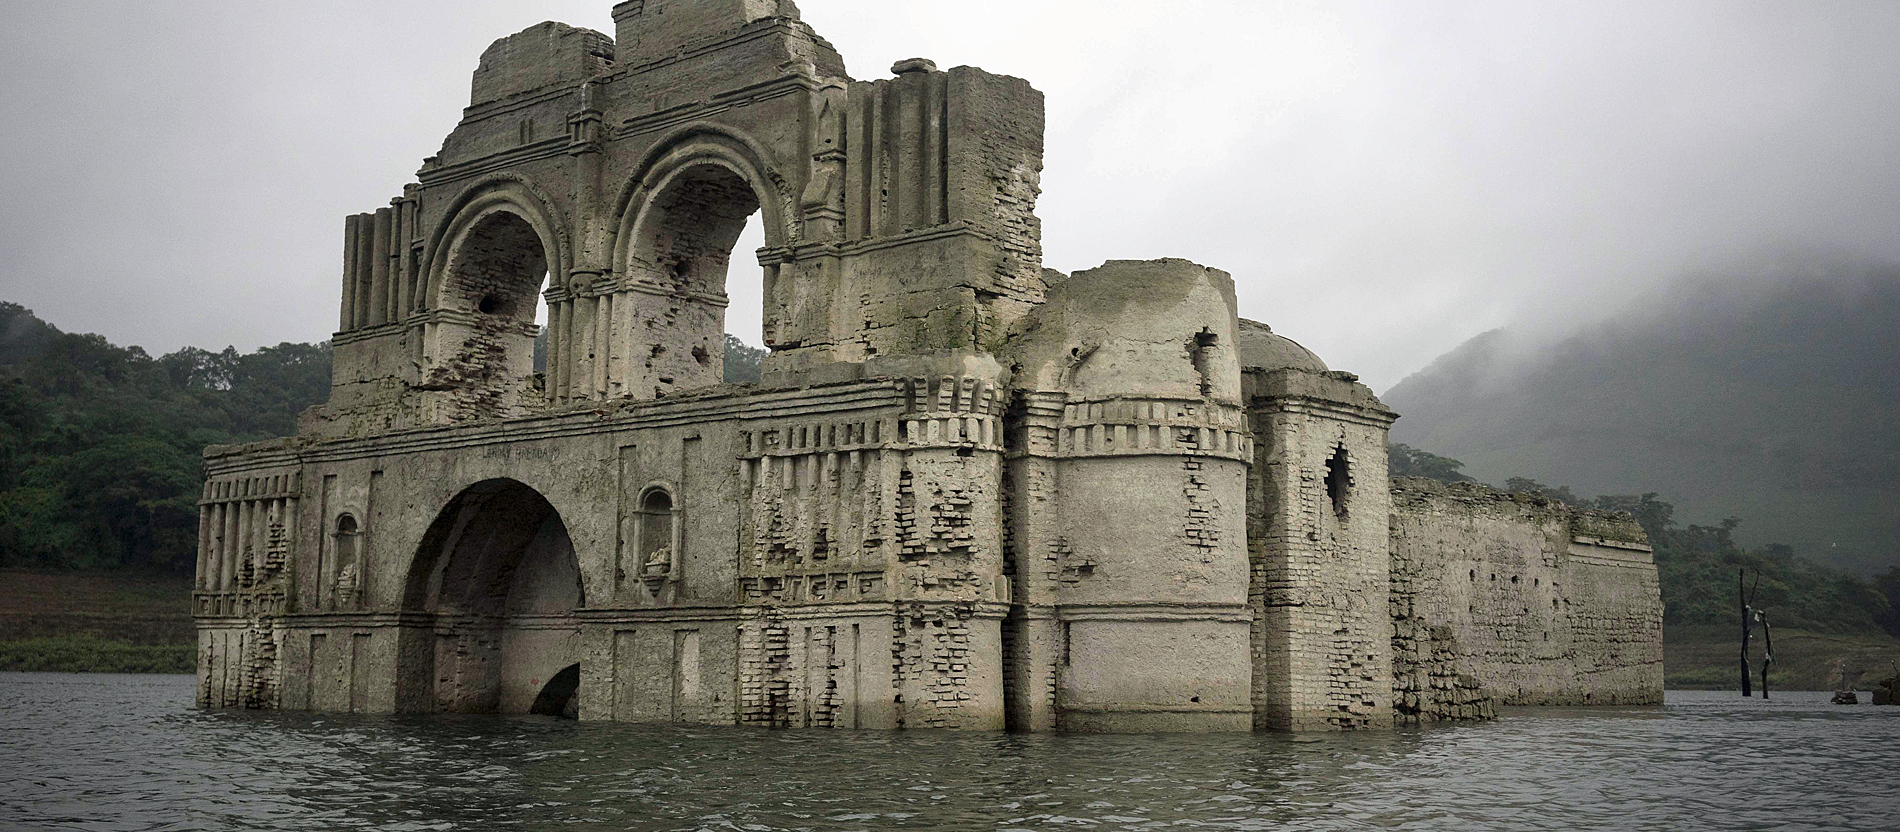 The remains of a mid-16th century church known as the Temple of Santiago, as well as the Temple of Quechula, is visible from the surface of the Grijalva River, which feeds the Nezahualcoyotl reservoir, due to the lack of rain near the town of Nueva Quechula, in Chiapas state, Mexico, Friday, Oct. 16, 2015. ¿The church was abandoned due the big plagues of 1773-1776,¿ said architect Carlos Navarette, who worked with Mexican authorities on a report about the structure that would be flooded in 1966 when the dam was completed. (AP Photo/David von Blohn) |